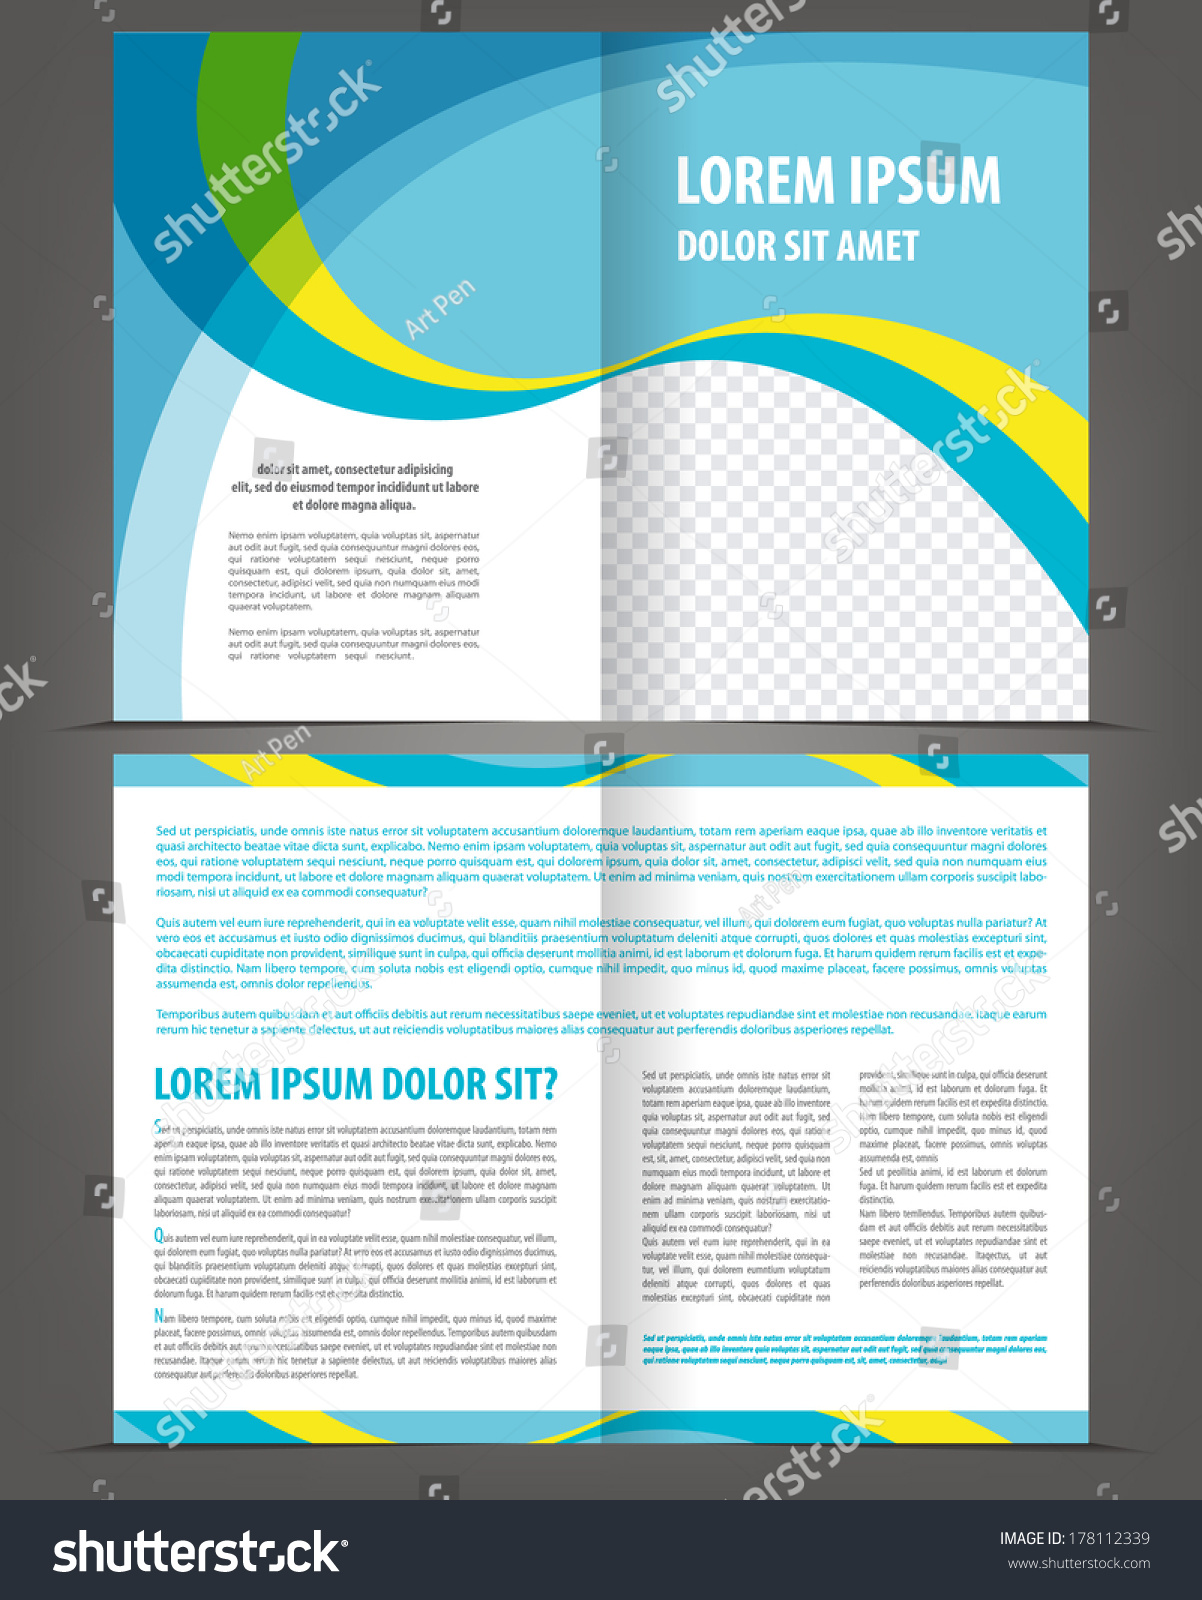 Beautiful 1 Page Website Template Huge 10 Best Resume Writers Solid 100 Square Pool Template 1099 Employee Contract Template Young 2 Column Notes Template Fresh2 Page Resume Format Doc Vector Empty Bi Fold Brochure Template Design With Blue And Yellow ..